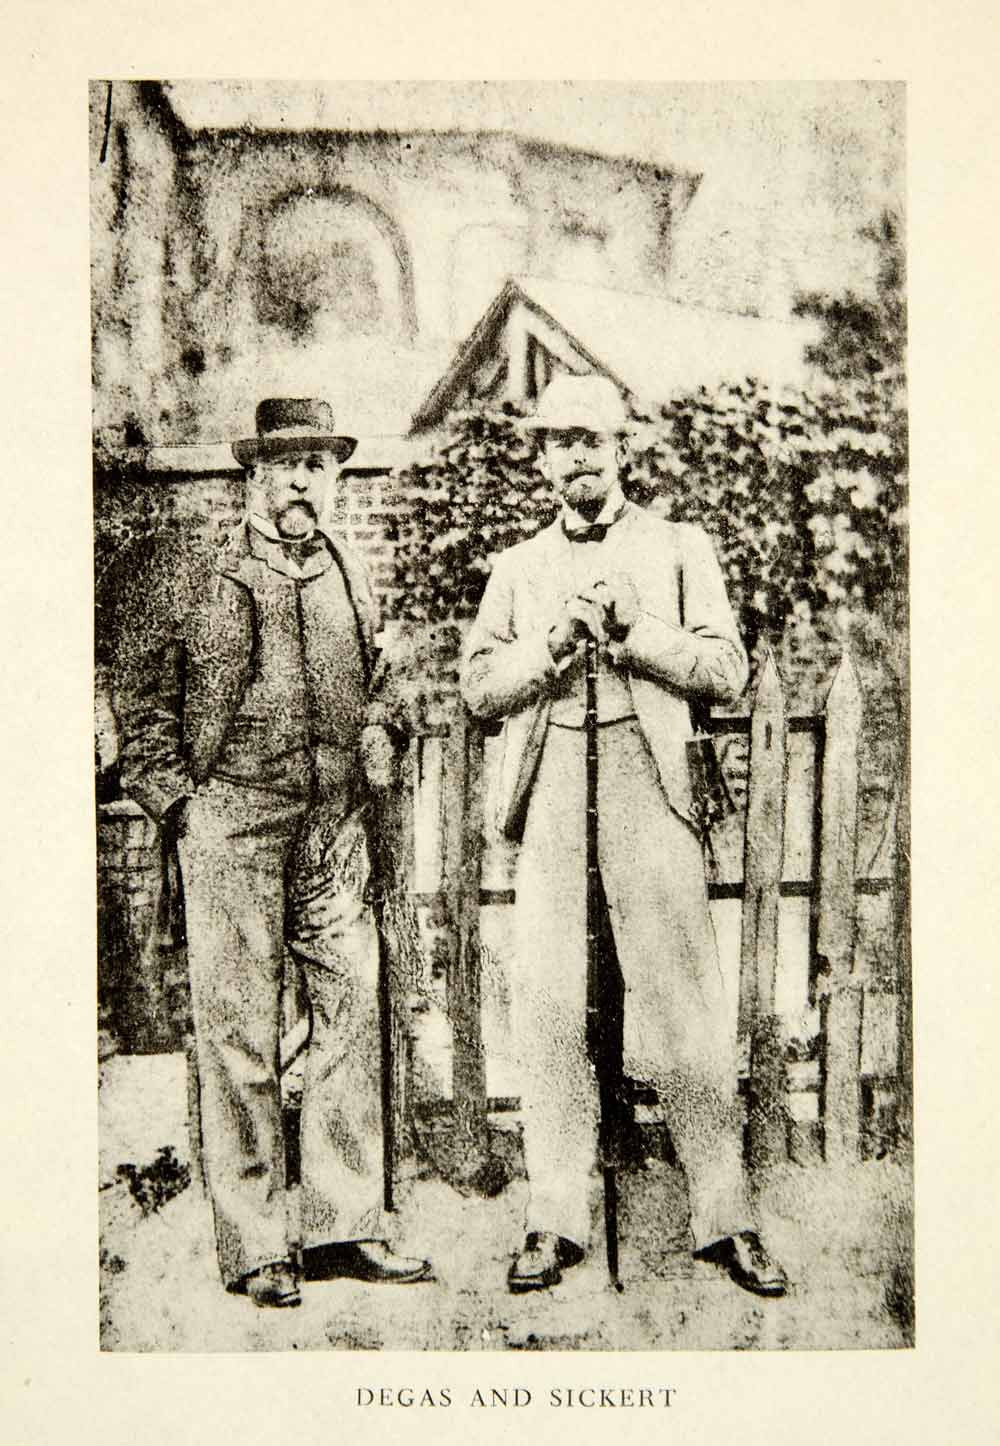 Edgar Degas (R) and Walter Sickert (L) - Degas had been an enormous influence on Sickert's progression as a painter